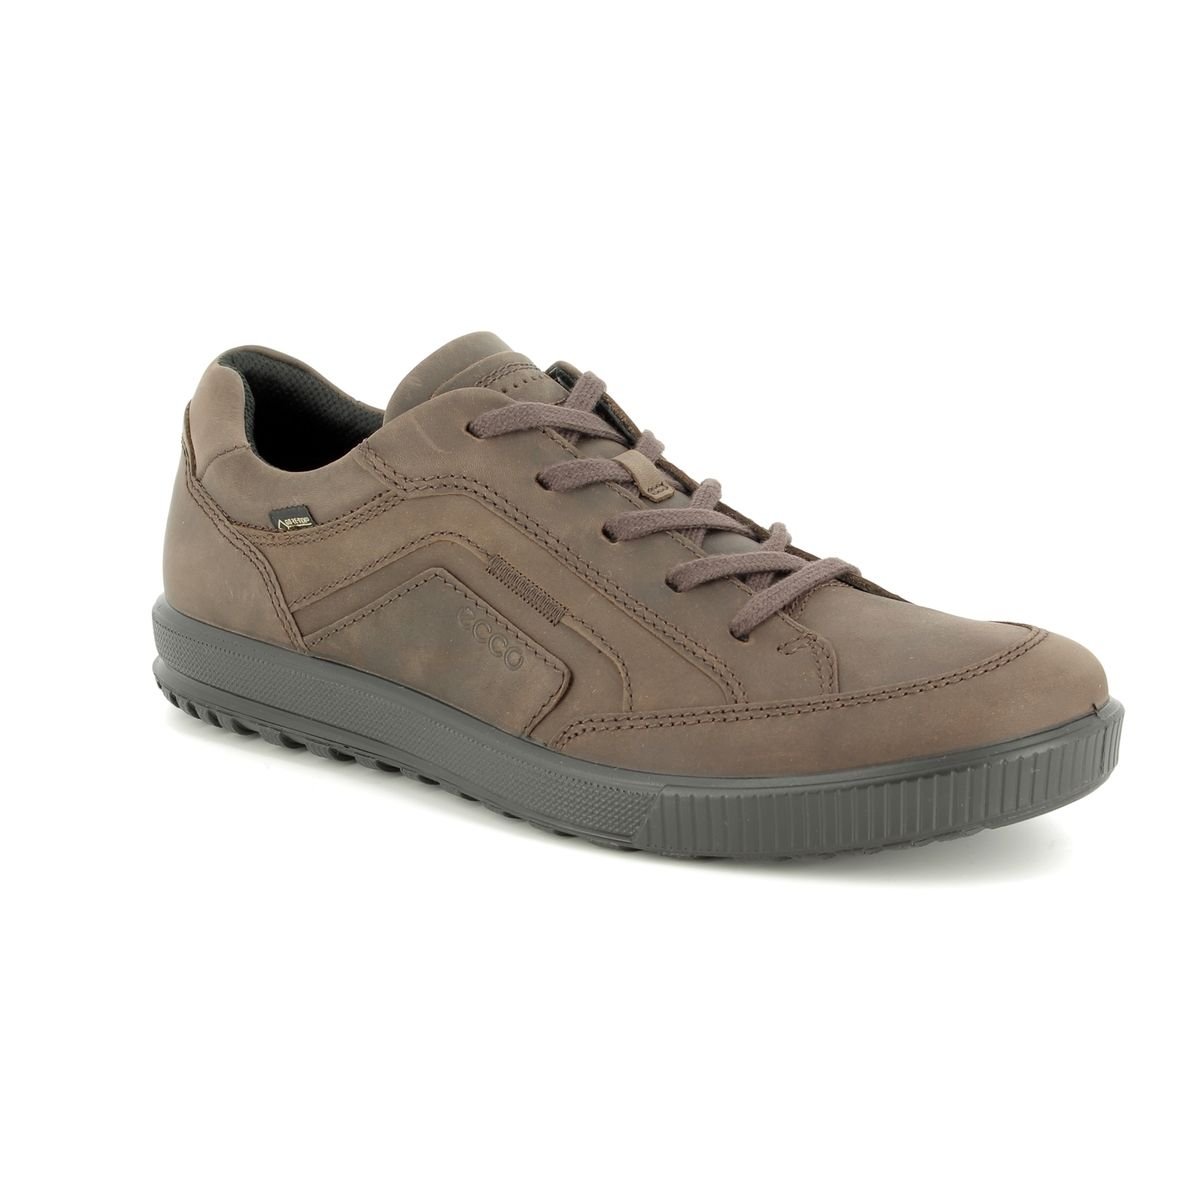 510a42e6d0fe ECCO Casual Shoes - Brown nubuck - 534294 02072 ENNIO GORE-TEX